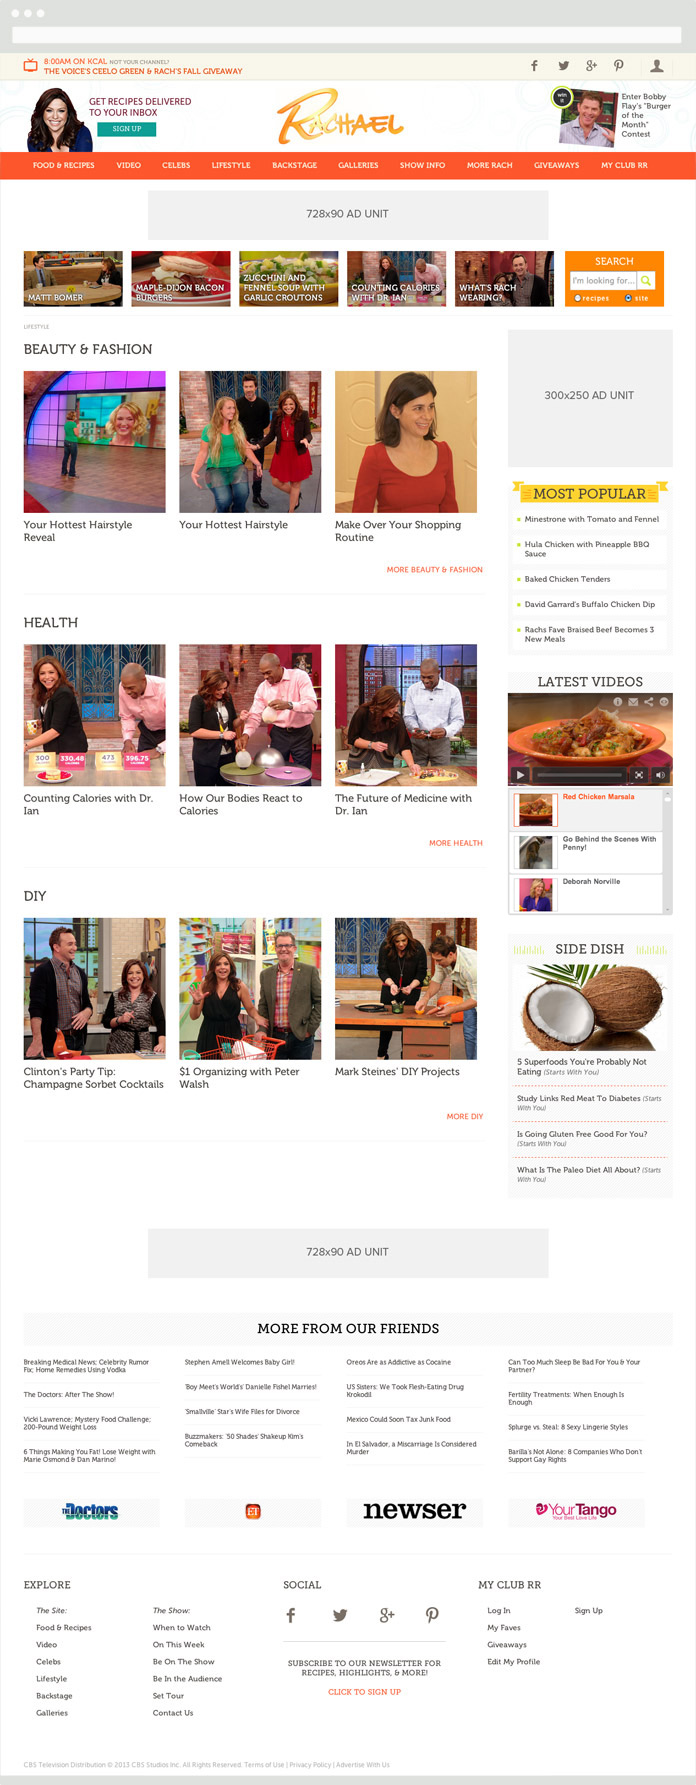 Image of the Rachael Ray Hub Pages